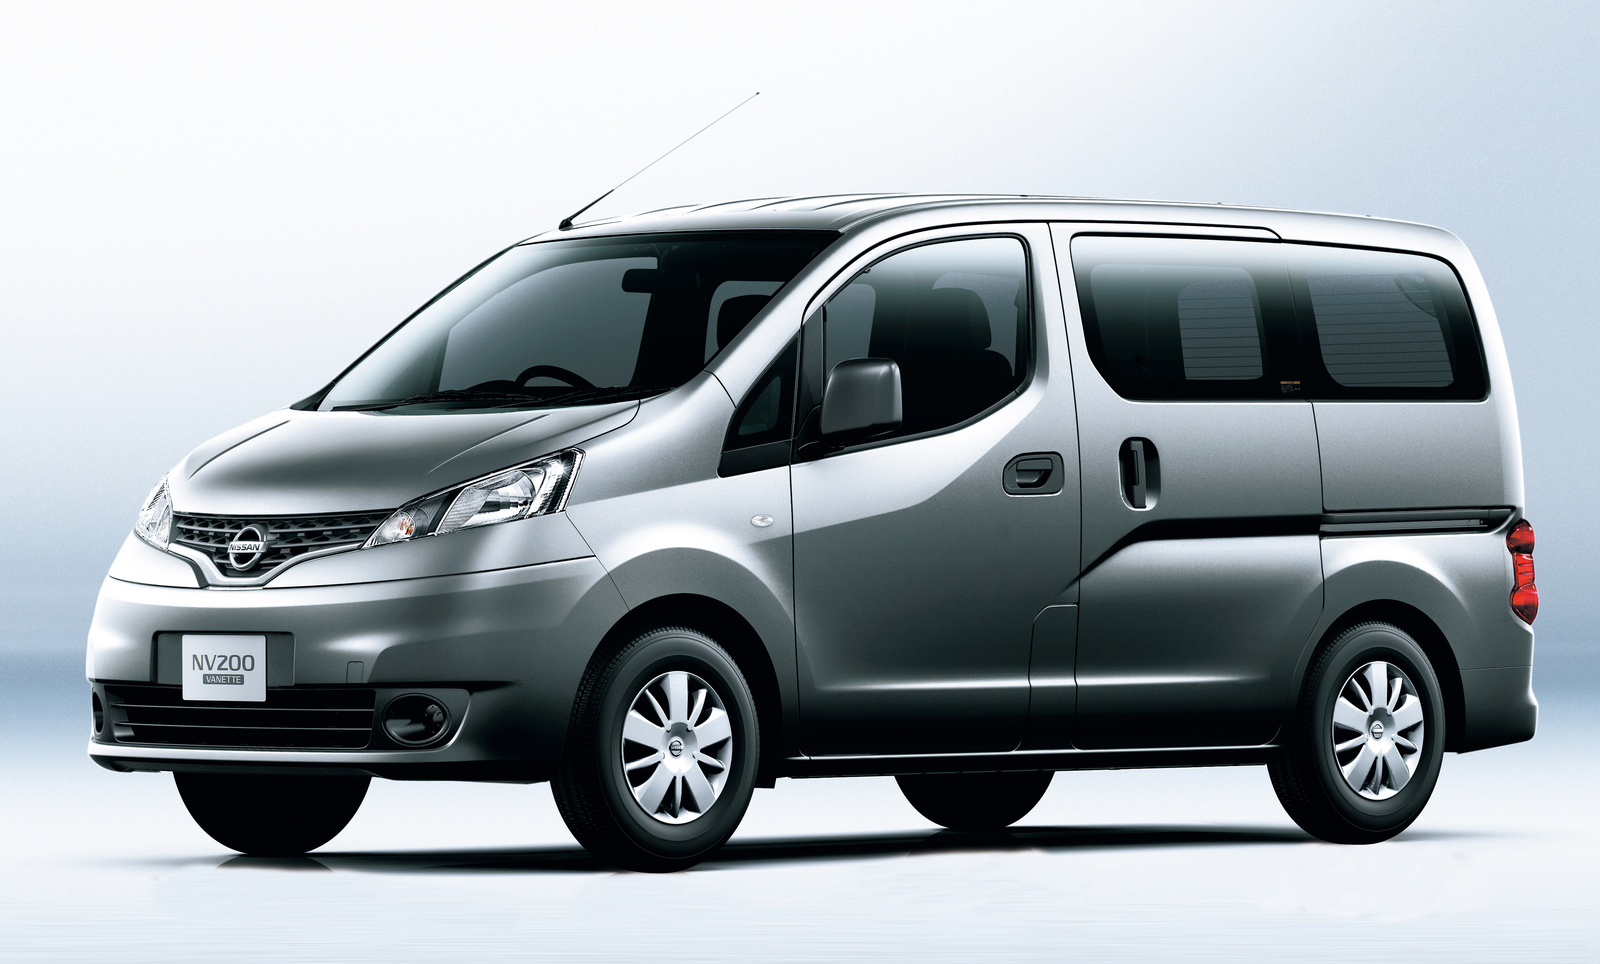 2014 nissan nv200 review cargurus. Black Bedroom Furniture Sets. Home Design Ideas